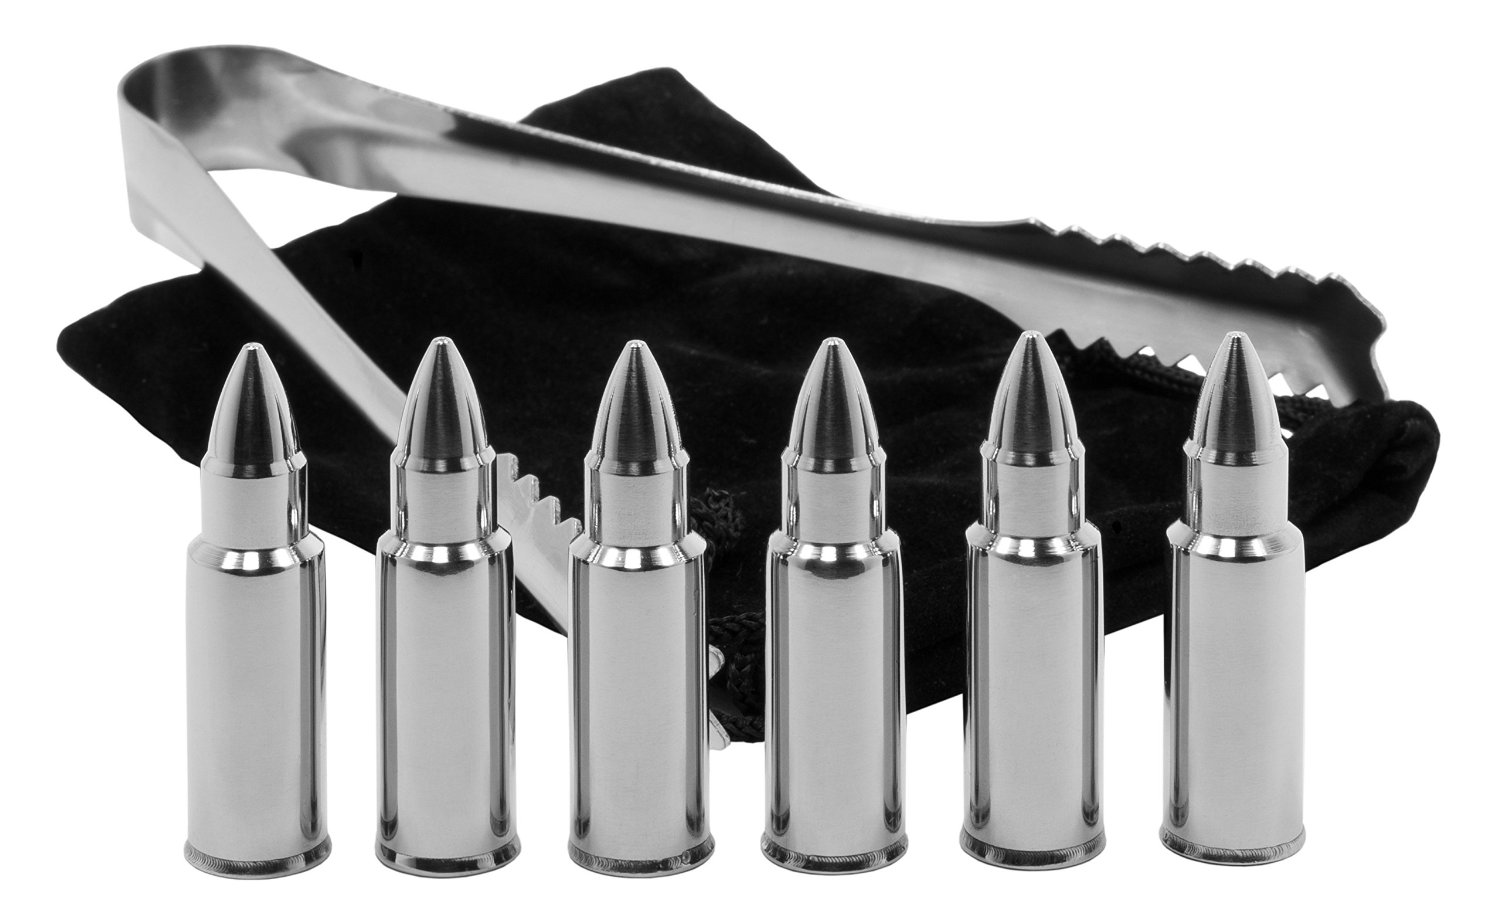 Stainless Steel Bullet Shaped Whiskey Stones